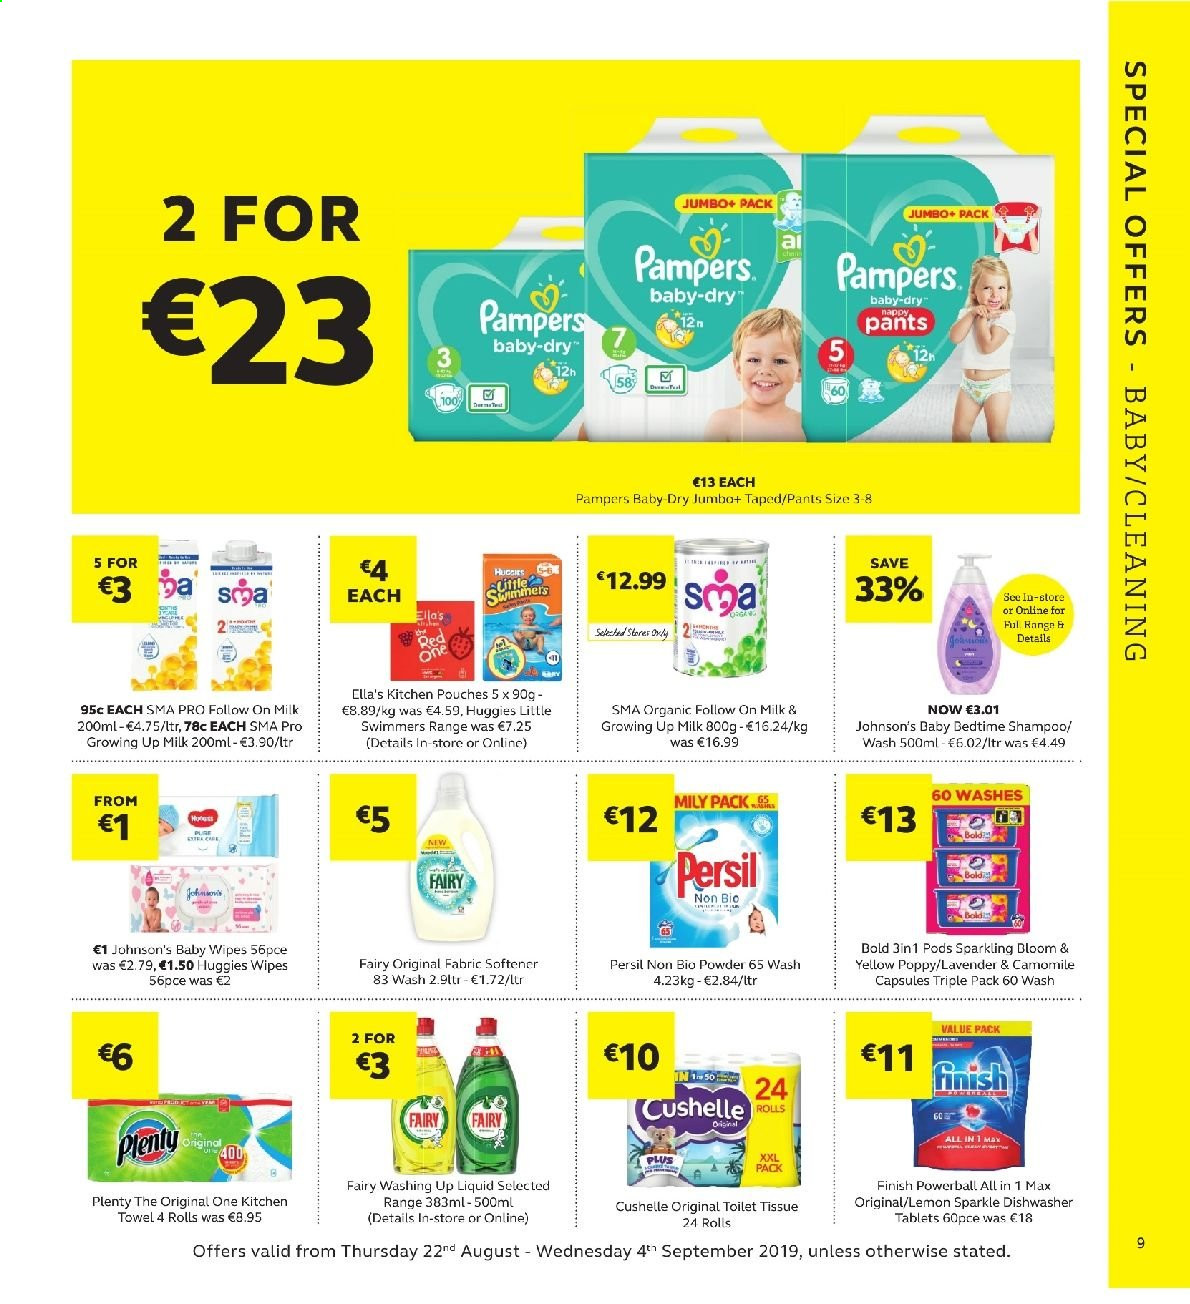 SuperValu offer  - 22.8.2019 - 4.9.2019 - Sales products - milk, Huggies, Pampers, baby wipes, Johnson's, toilet paper, tissues, Plenty, kitchen towels, wipes, Fairy, Persil, fabric softener, Bold, dishwashing liquid, Finish Powerball, shampoo, BIC. Page 9.